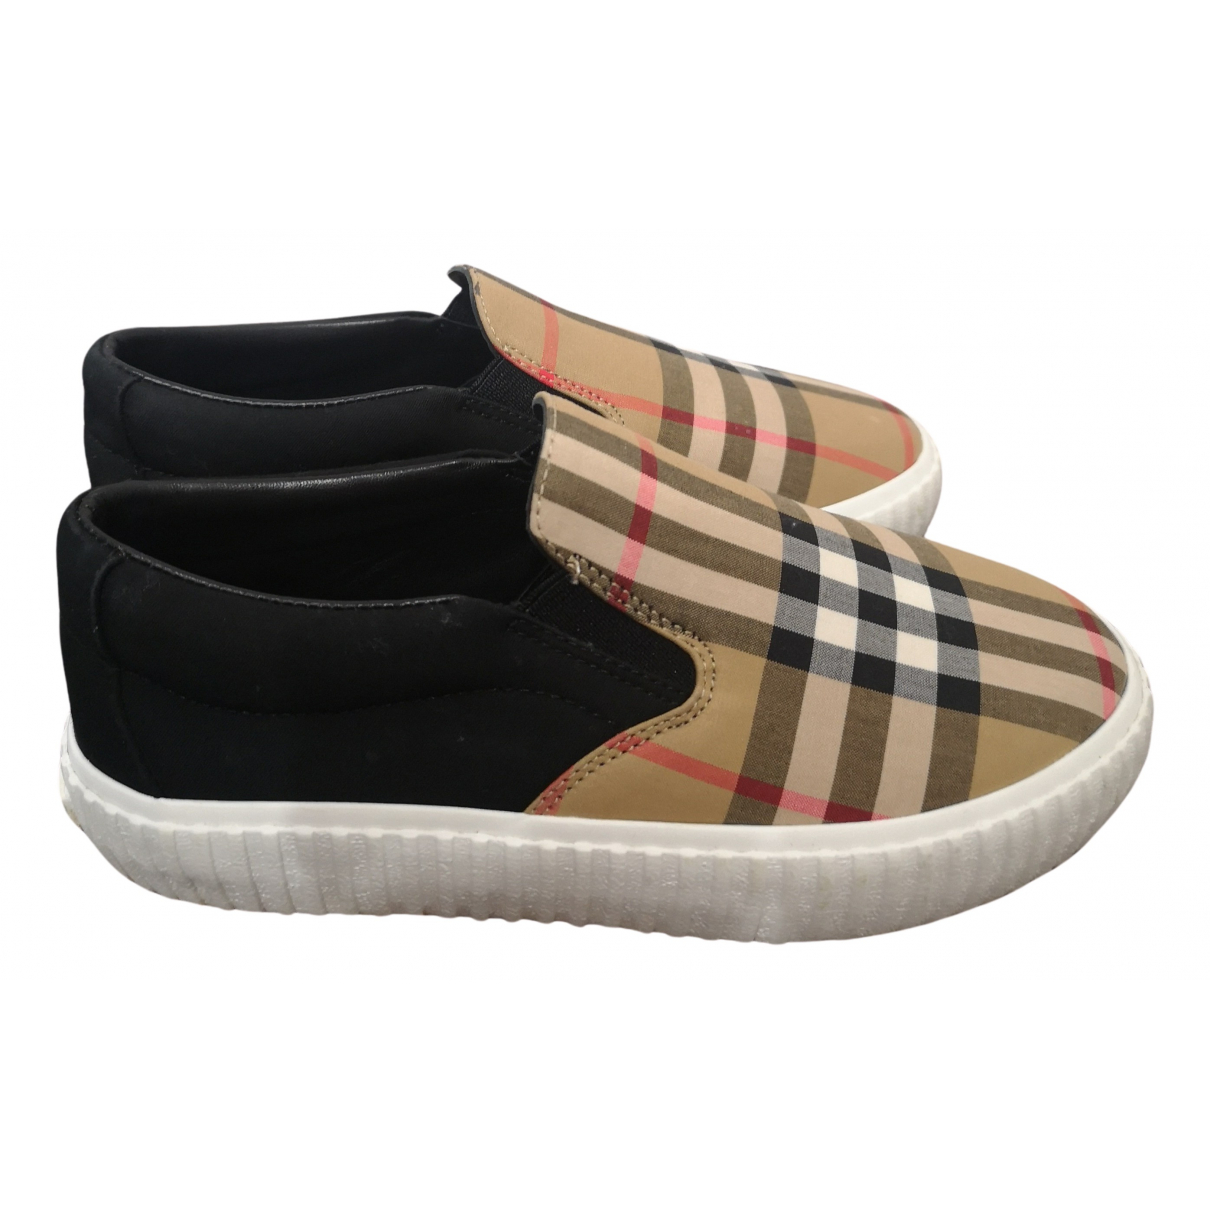 Burberry N Multicolour Cloth Trainers for Kids 33 FR